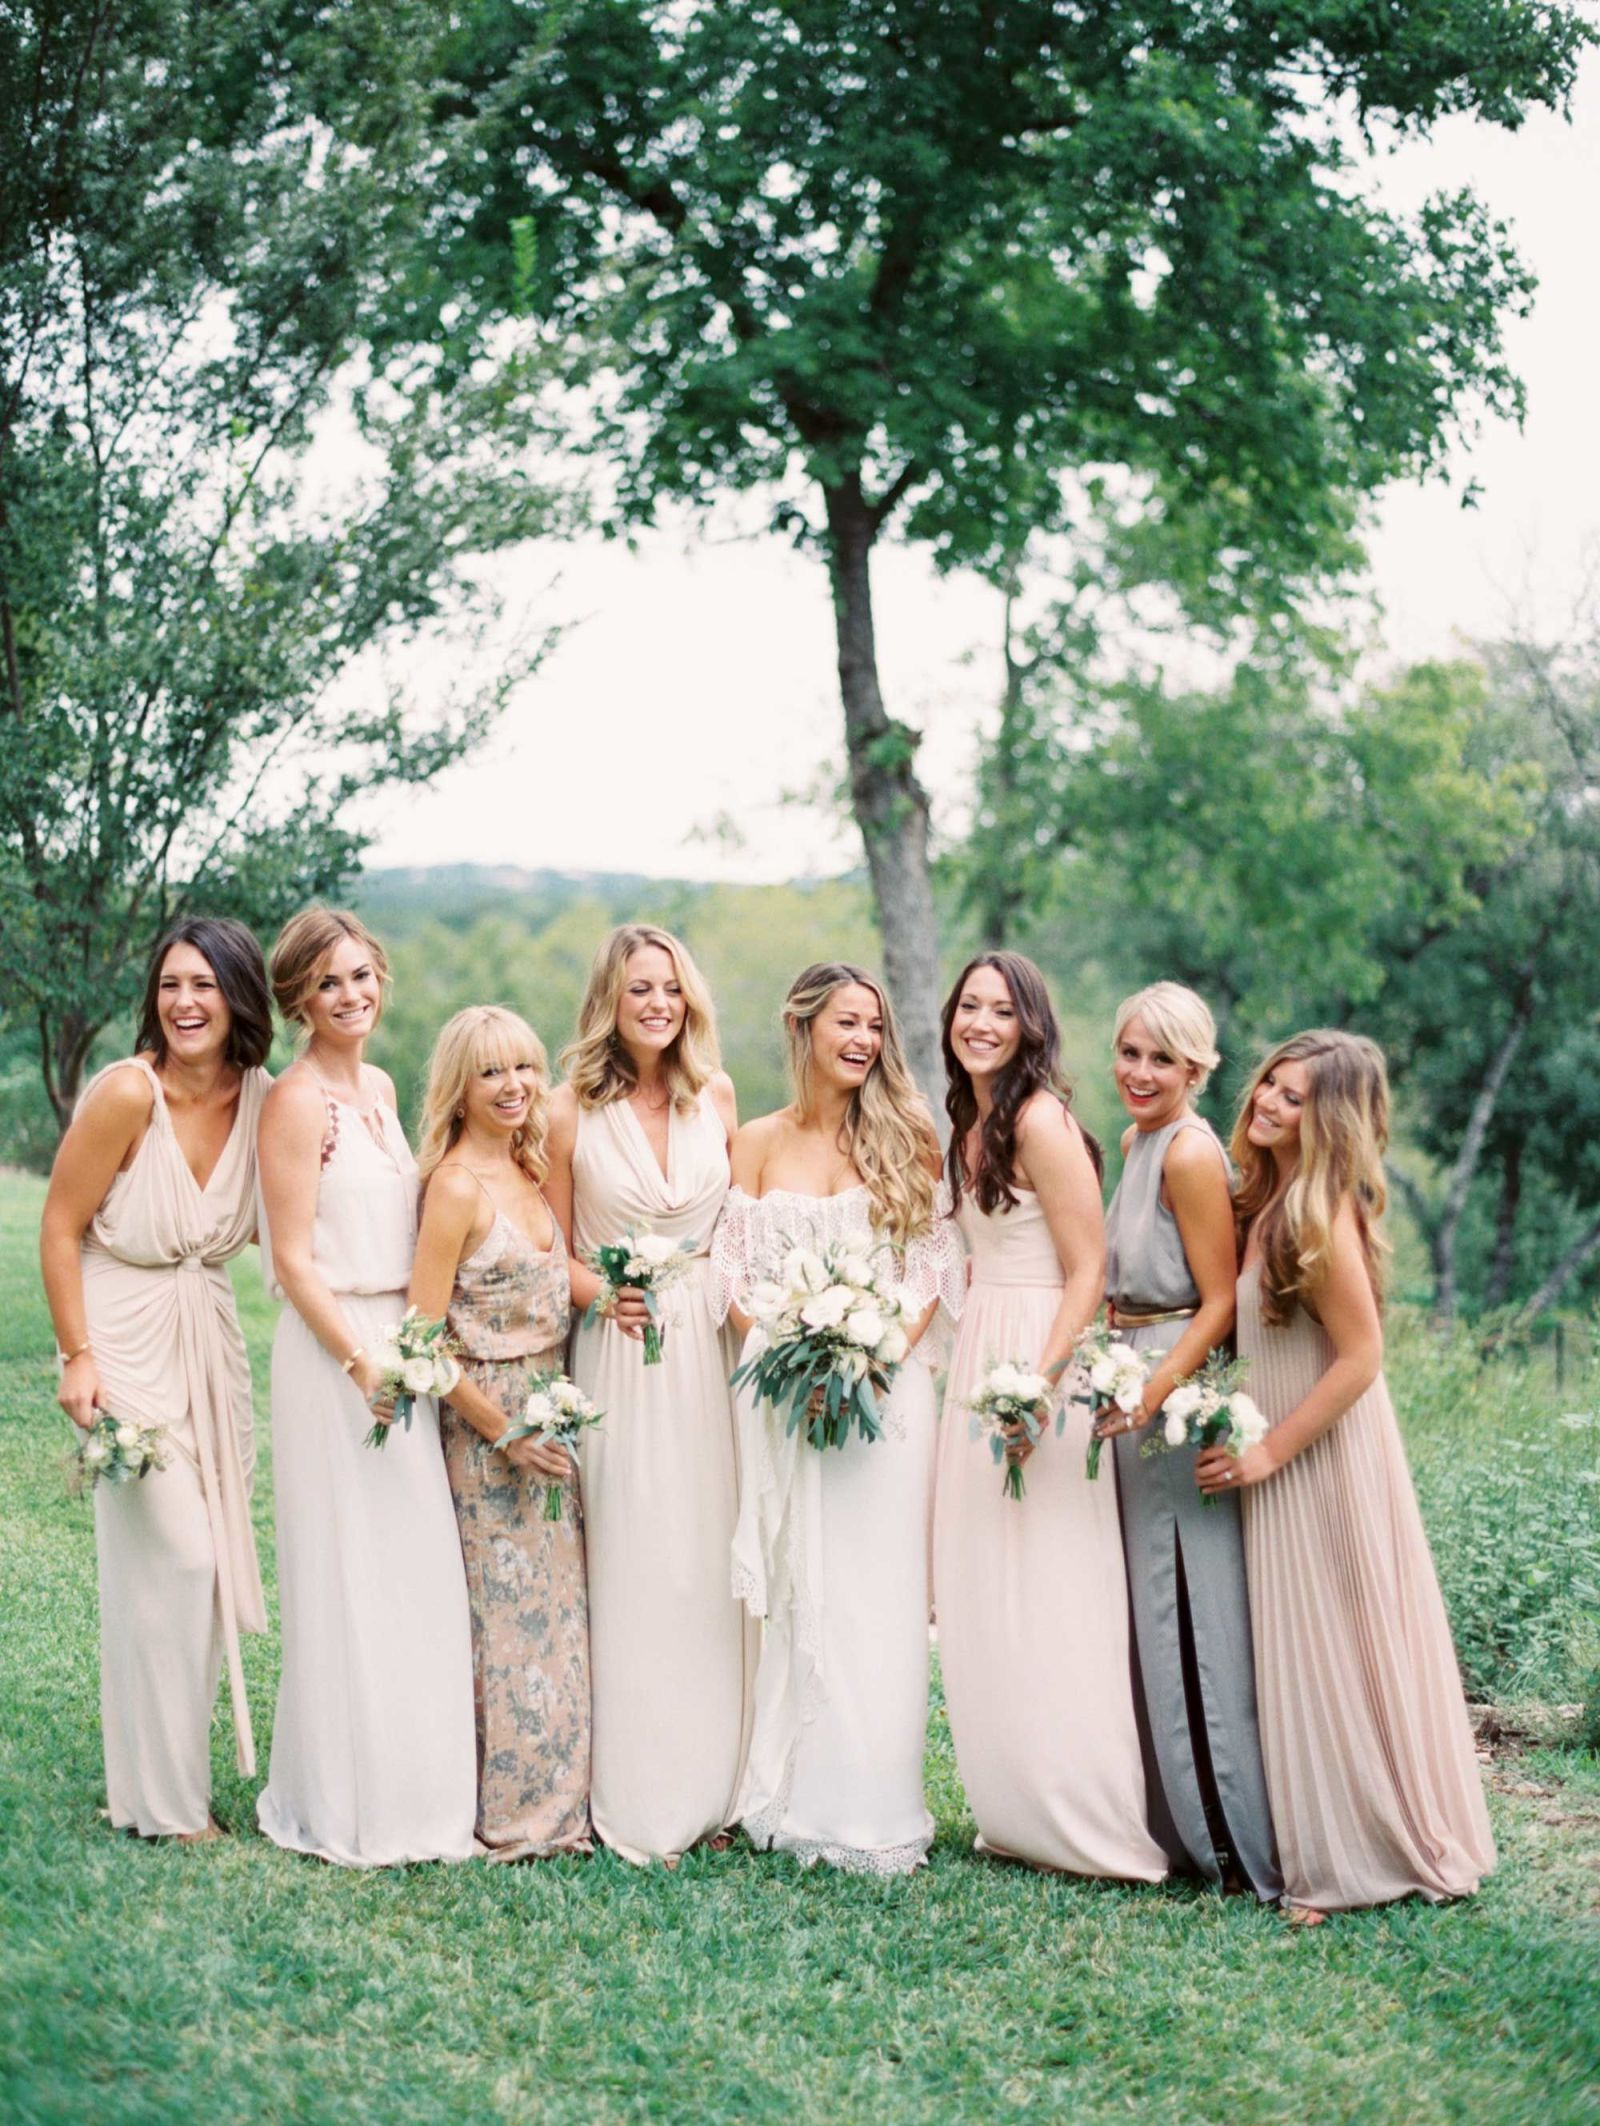 9 gorgeous wedding ideas that will make you want a fall ceremony 9 gorgeous wedding ideas that will make you want a fall ceremony ombrellifo Choice Image